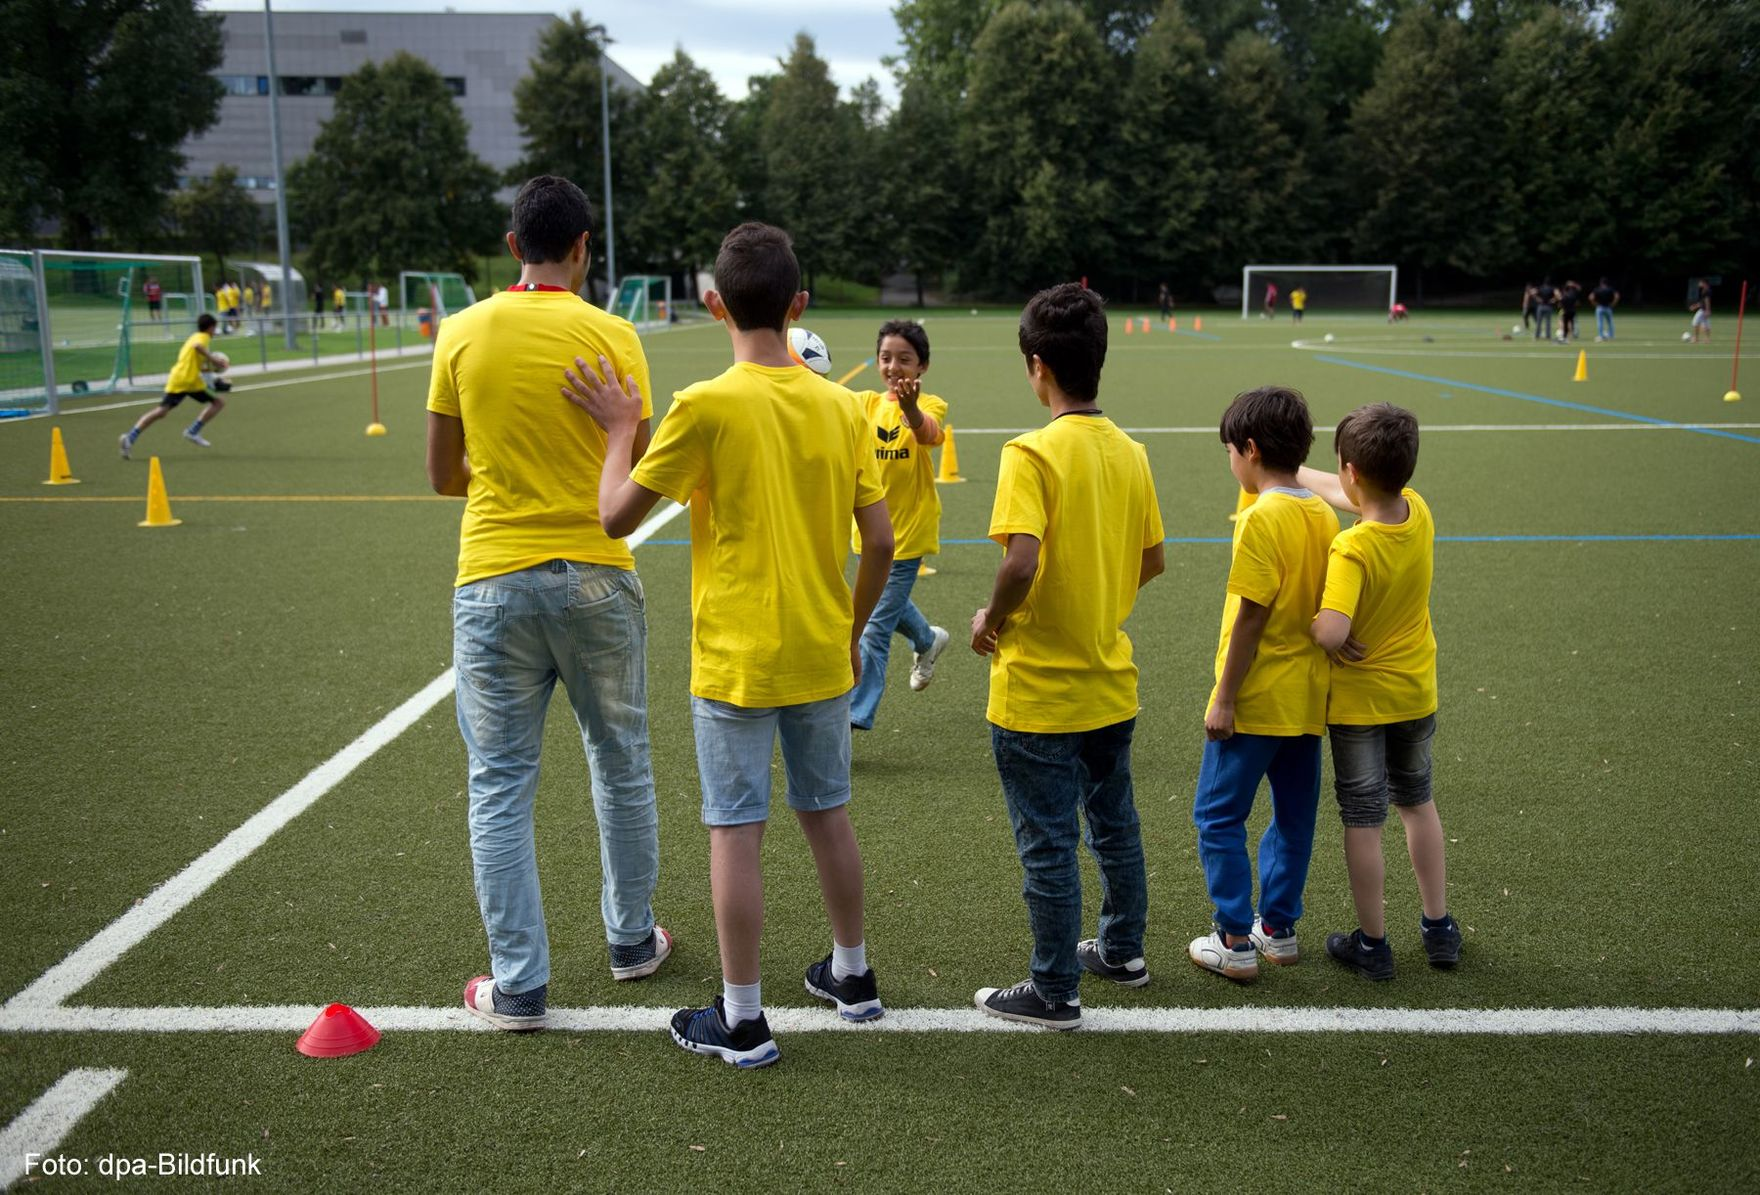 Integrating refugees into sports clubs in Saxony